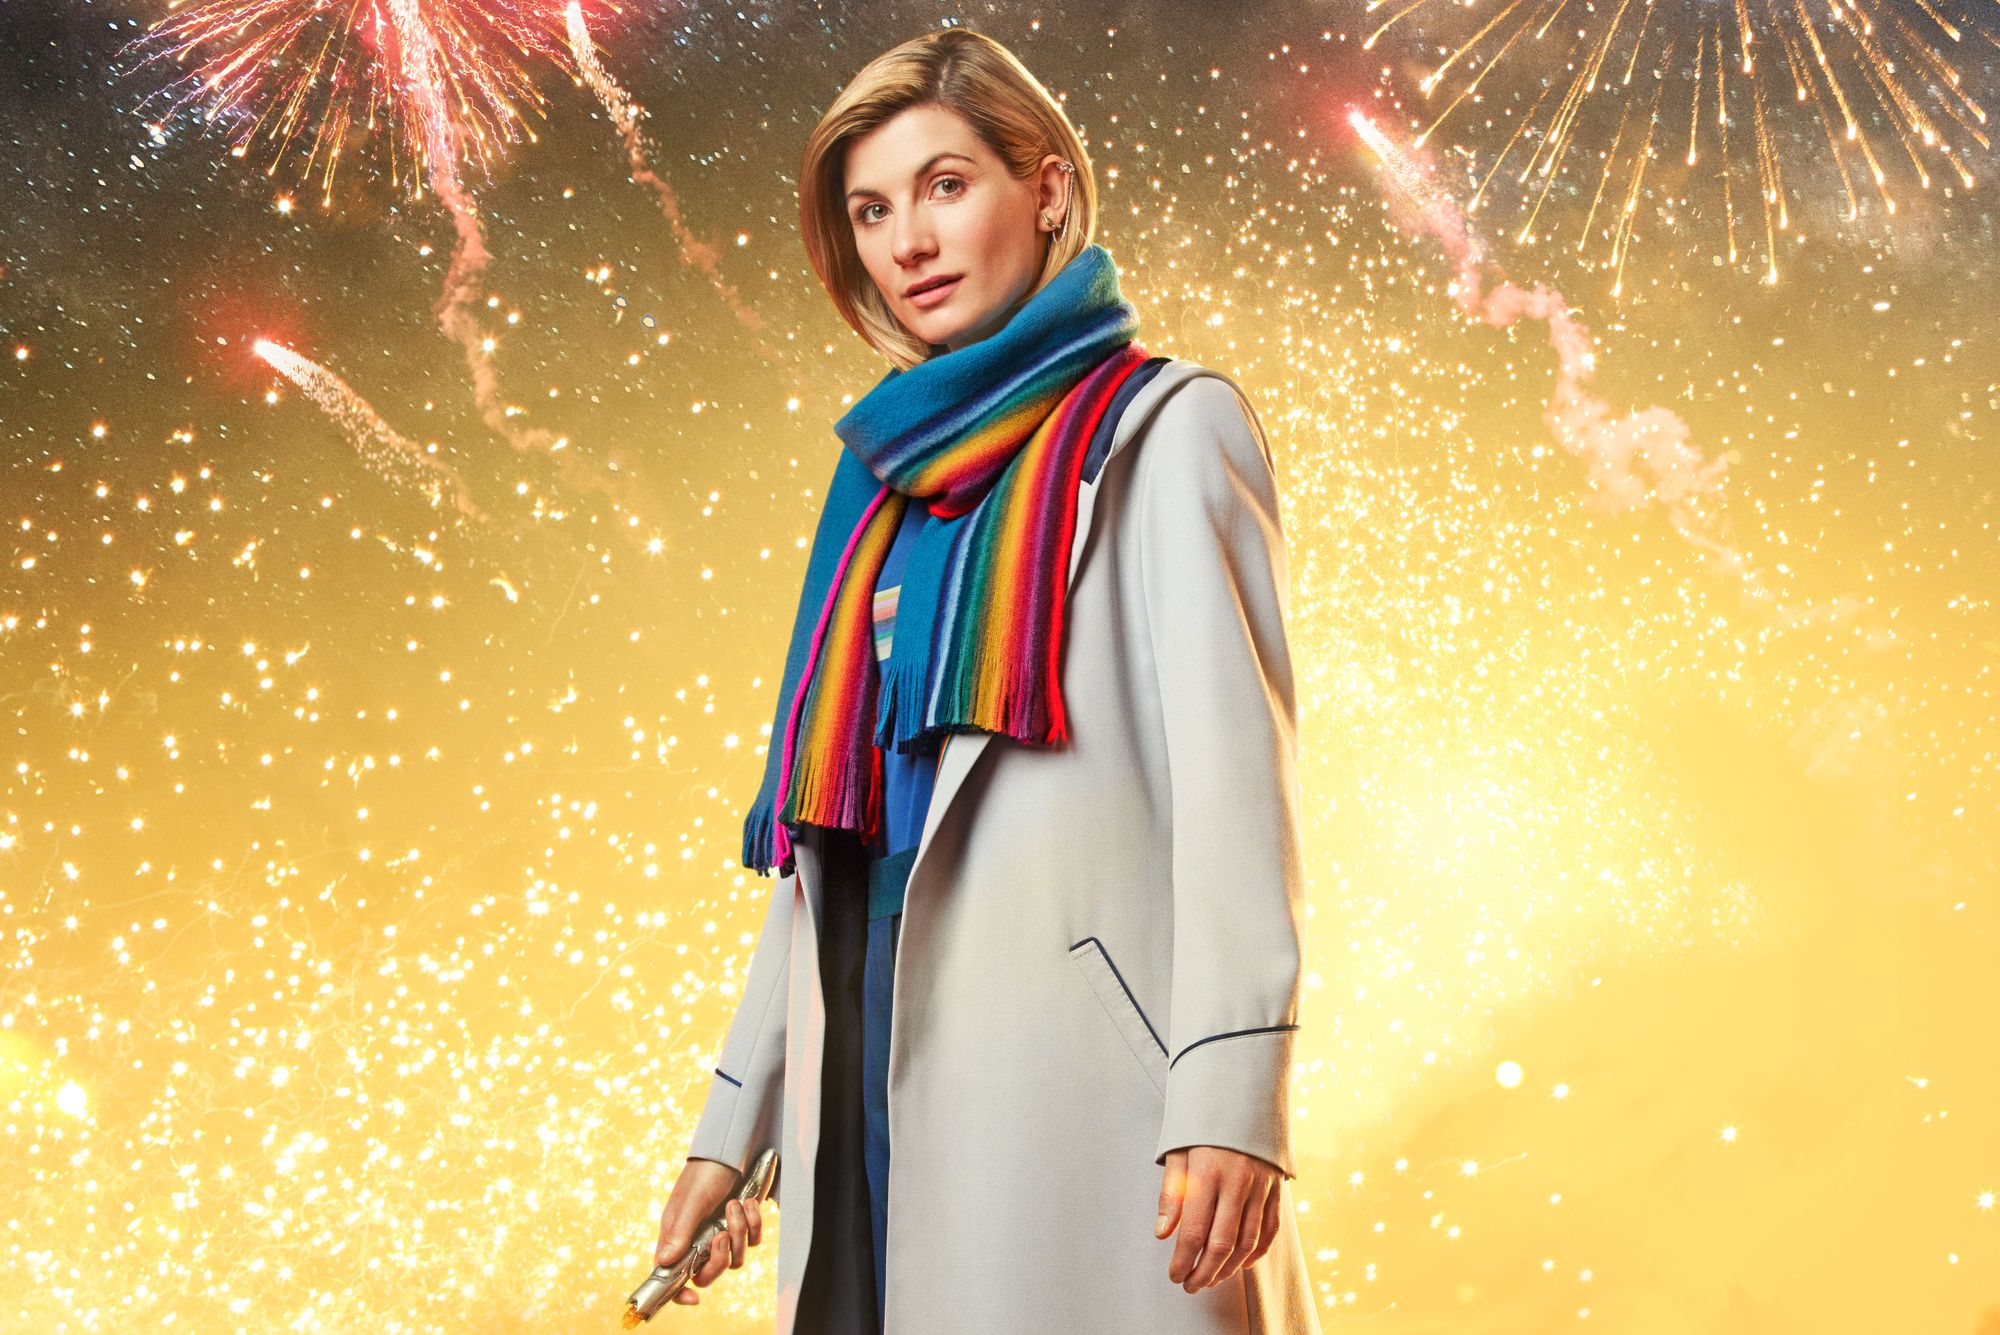 Doctor Who: New Year's Day special